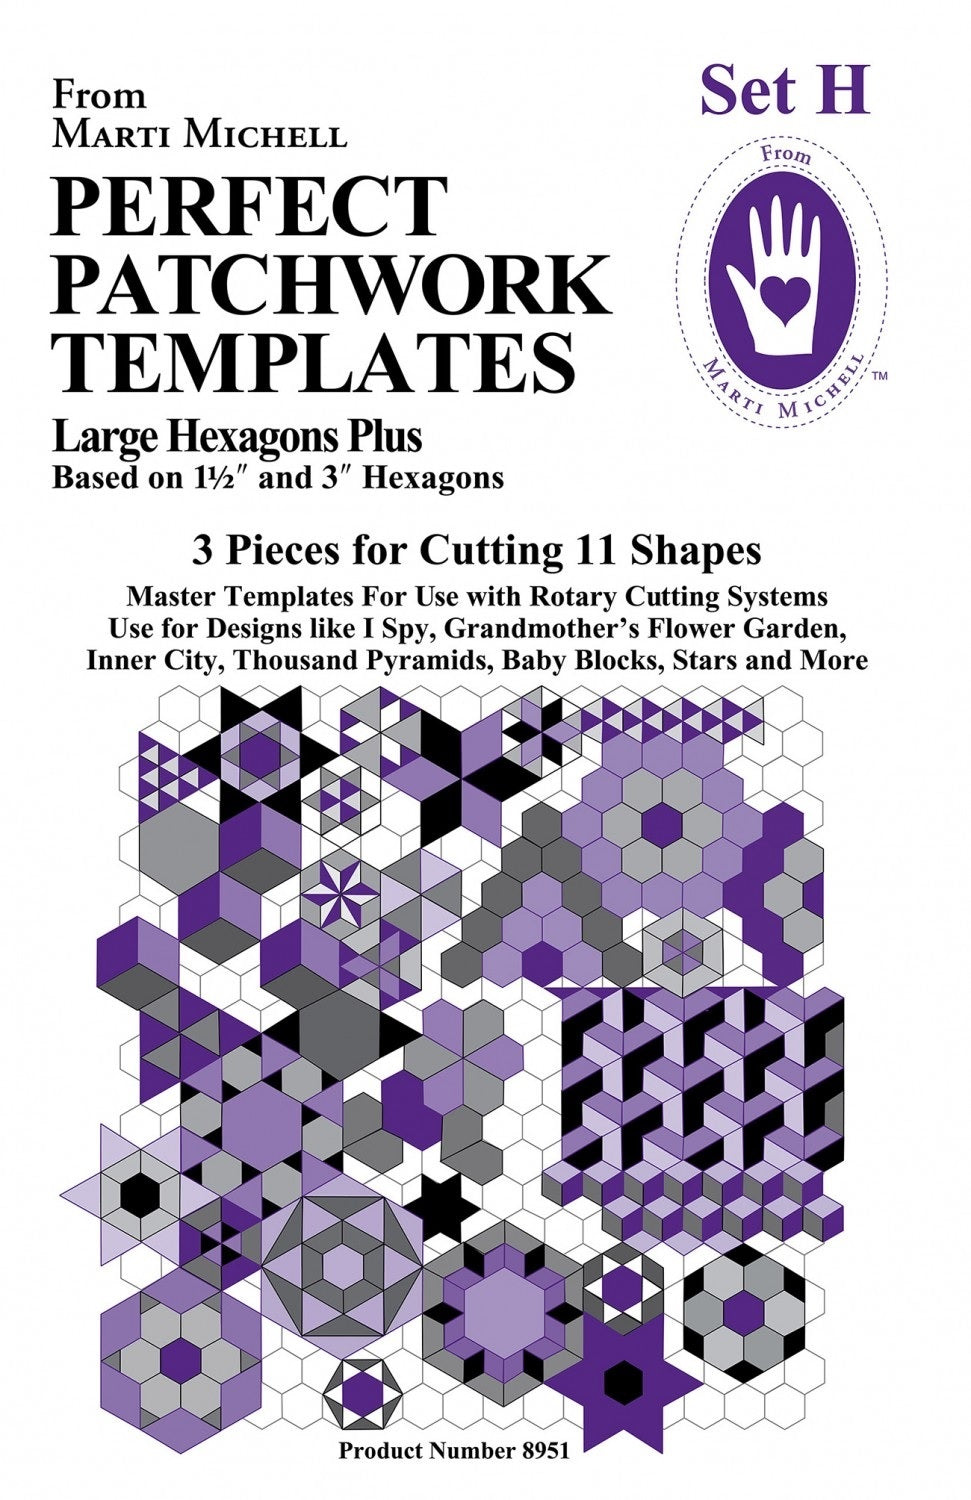 Marti Michele Perfect Patchwork Template Set H Large Hexagons